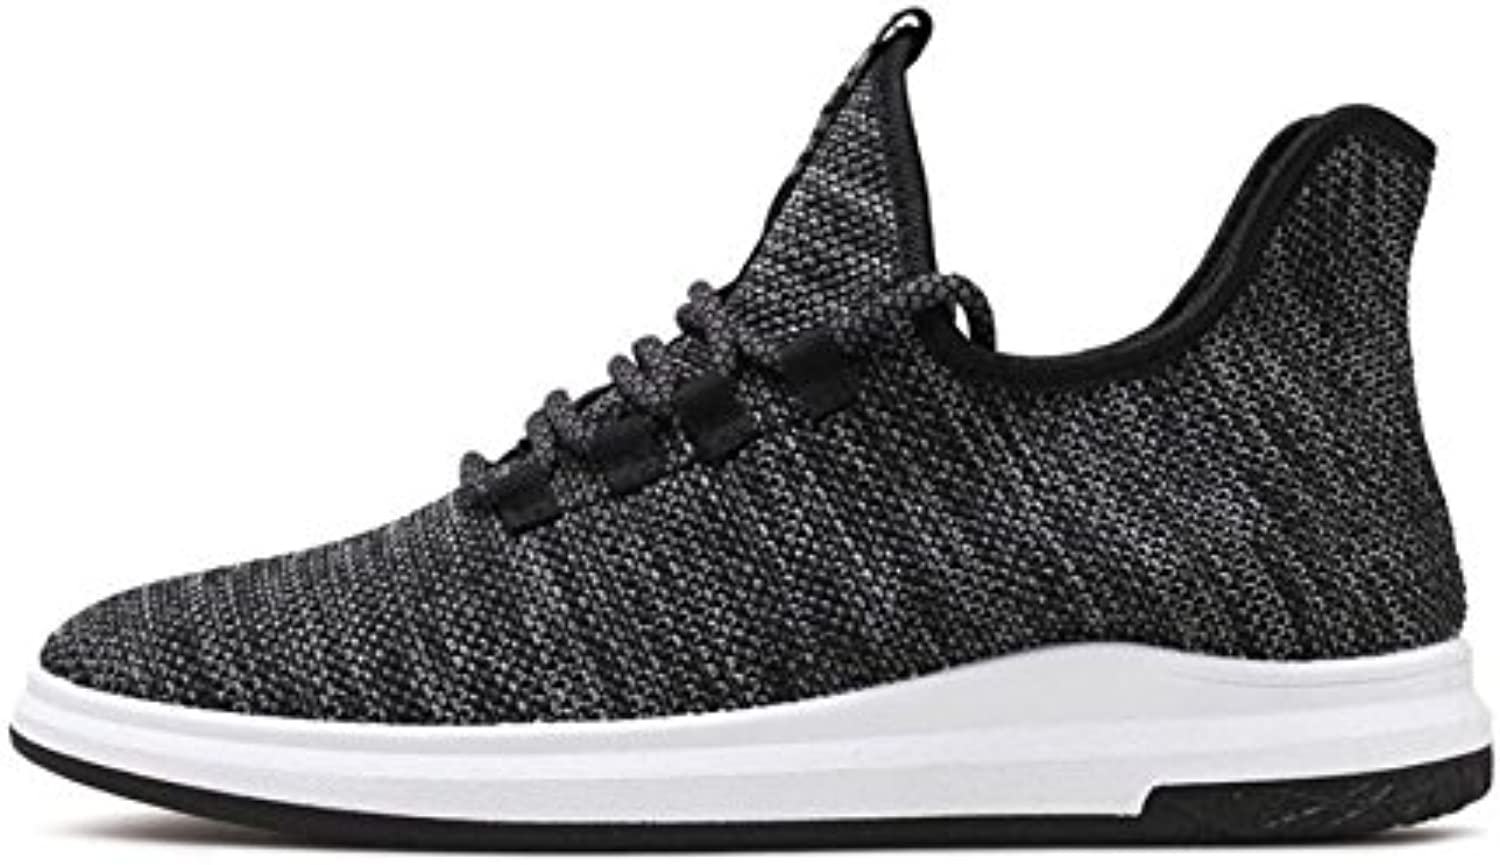 Moxicha Men's Running Zapatos Lightweight Outdoor Casual Athletic Knit Sports Sneakers, Soft Sole Lightweight?